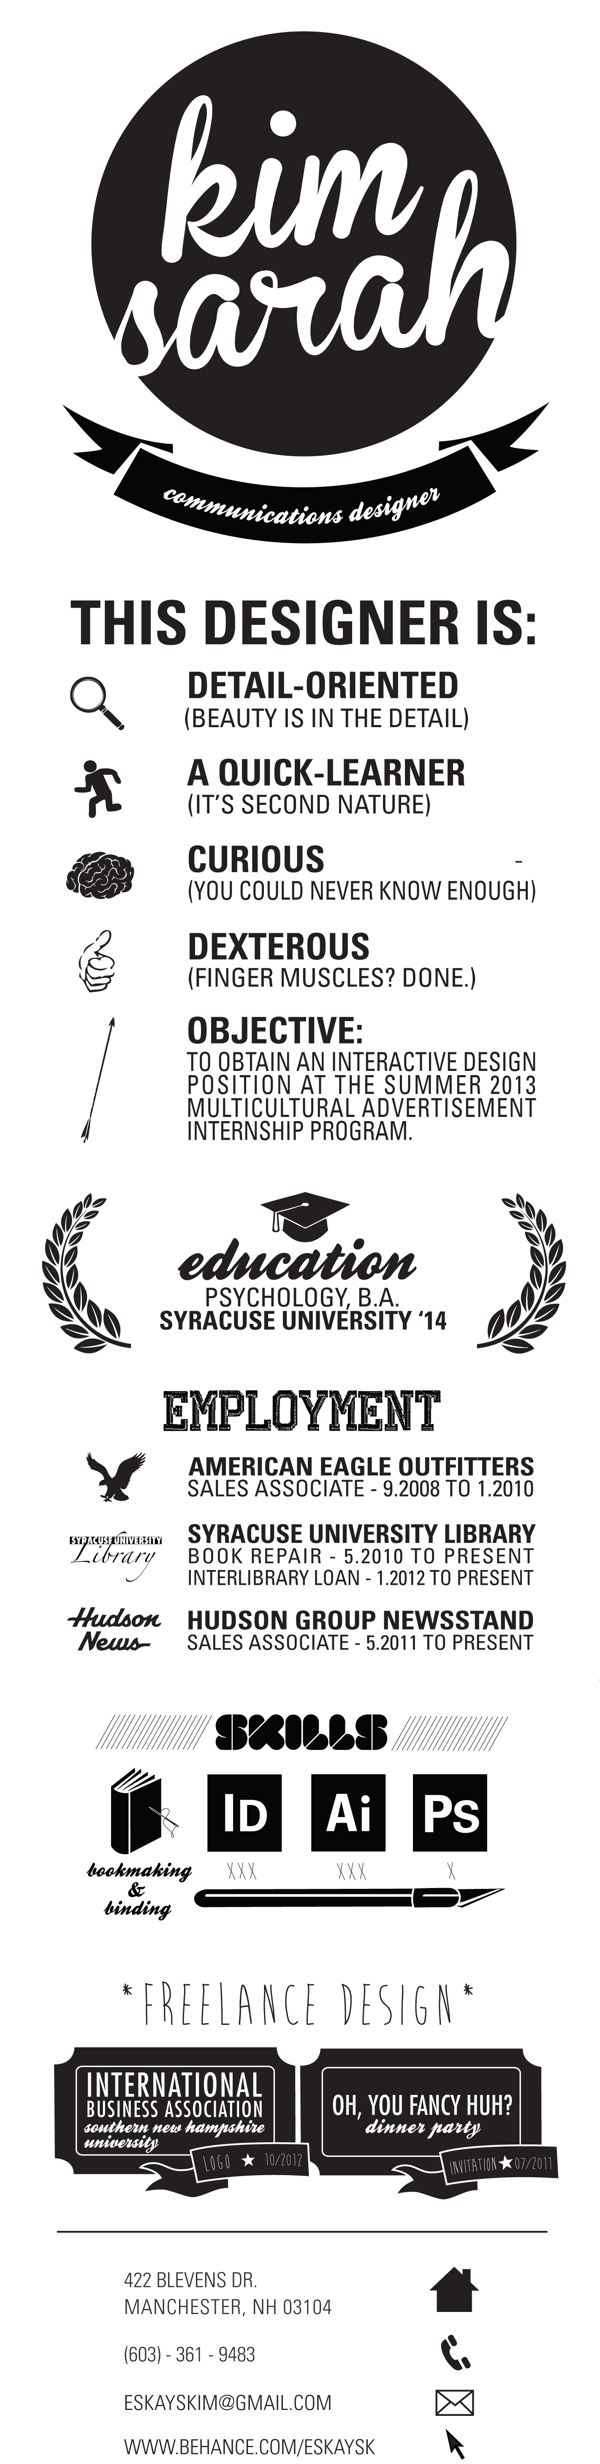 Opposenewapstandardsus  Nice  Resume Ideas On Pinterest  Resume Resume Templates And  With Great  Resume Ideas On Pinterest  Resume Resume Templates And Resume Styles With Endearing Resume Design Tips Also Corporate Resume Template In Addition Educational Resumes And Operations Manager Resume Examples As Well As Designed Resume Additionally List Education On Resume From Pinterestcom With Opposenewapstandardsus  Great  Resume Ideas On Pinterest  Resume Resume Templates And  With Endearing  Resume Ideas On Pinterest  Resume Resume Templates And Resume Styles And Nice Resume Design Tips Also Corporate Resume Template In Addition Educational Resumes From Pinterestcom